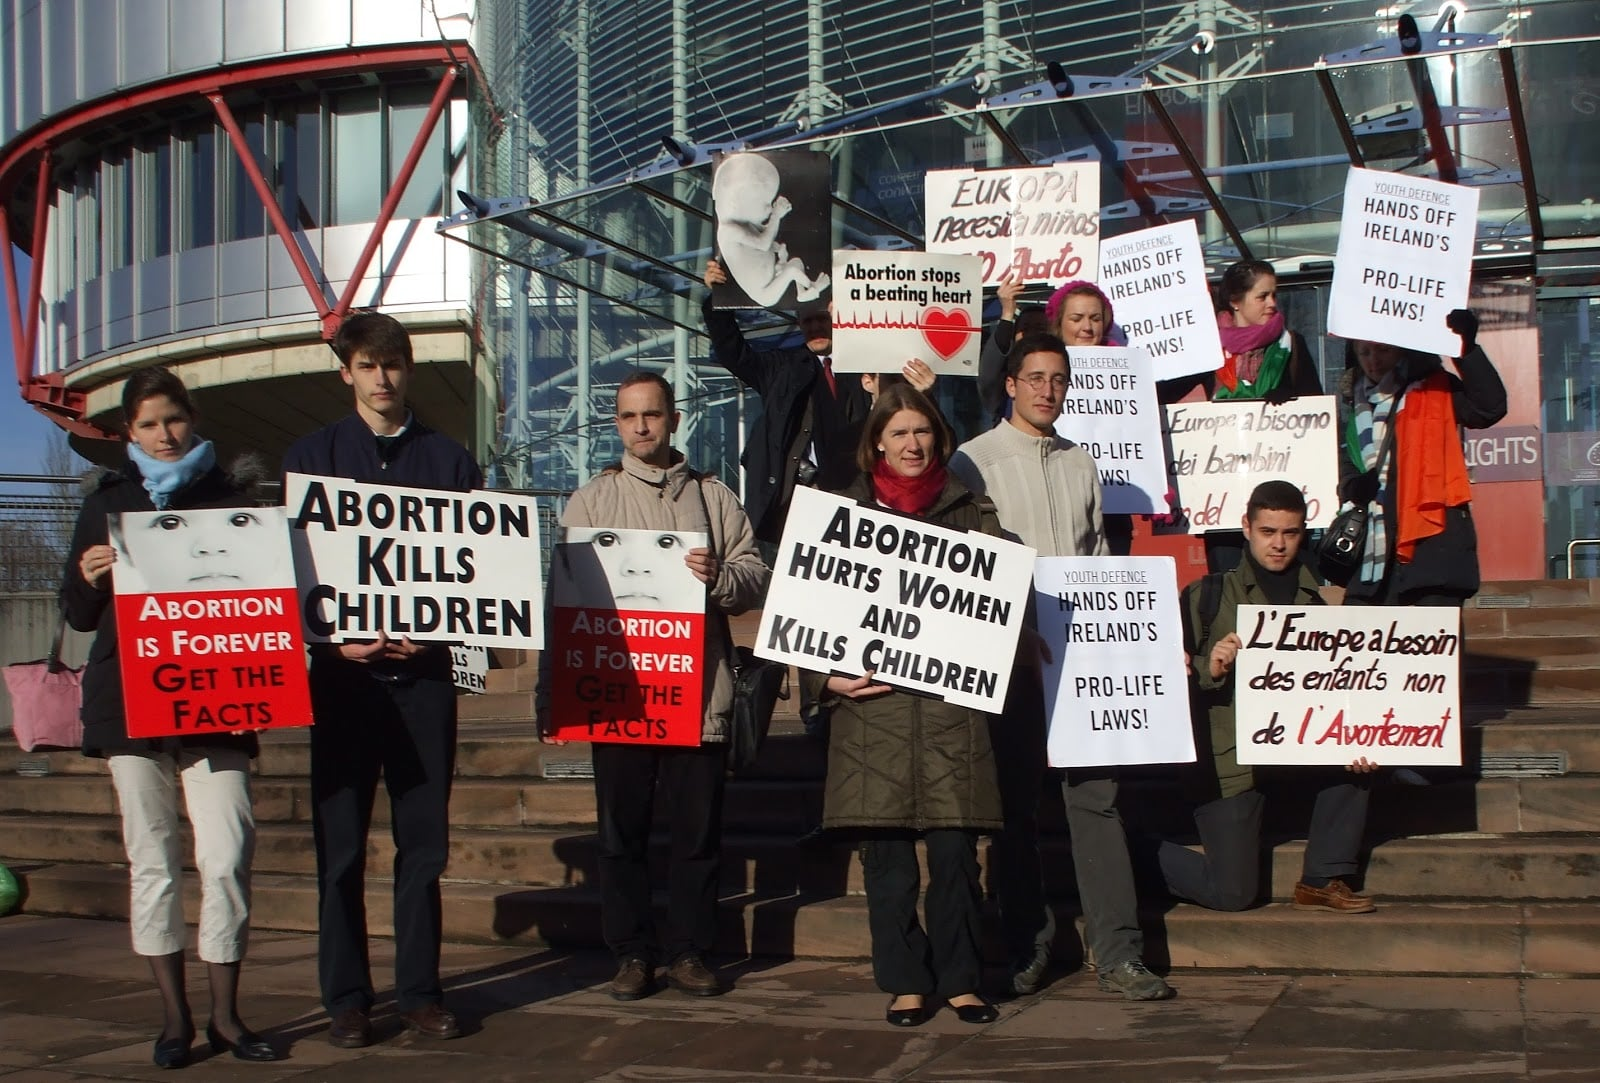 Pro-life supporters in Belfast